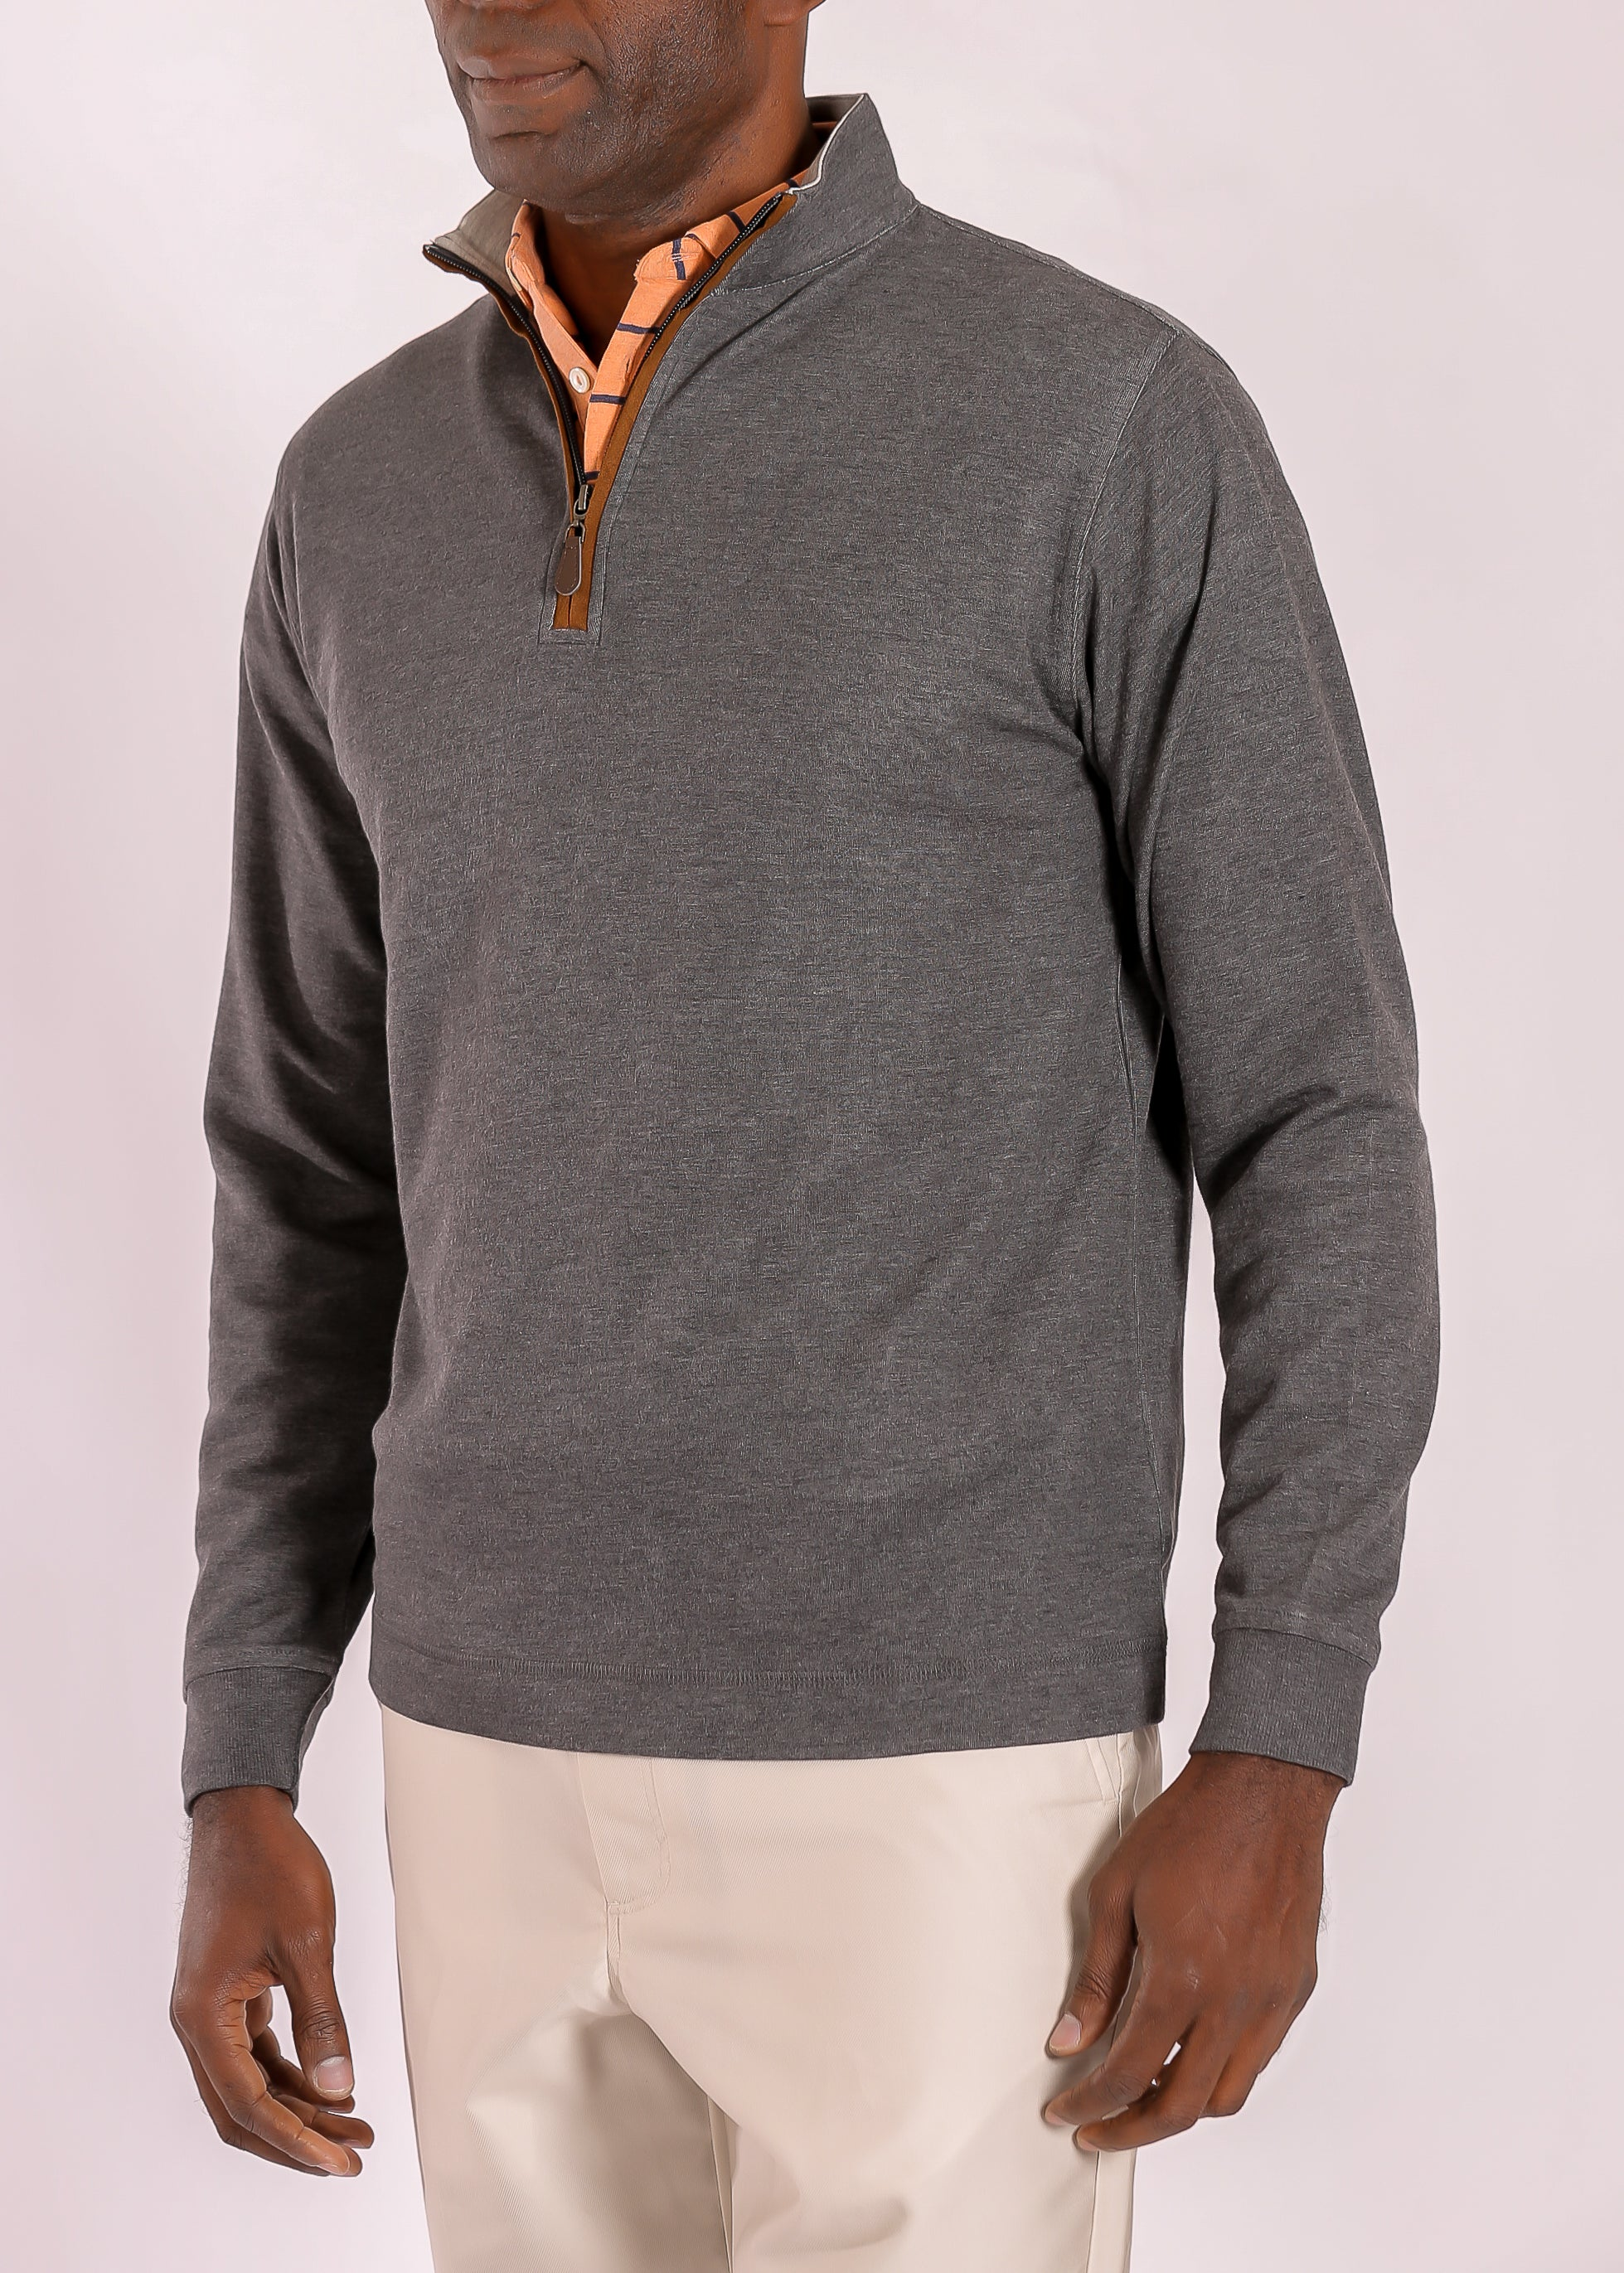 Morgan Soft Touch Quarter Zip - Black Heather